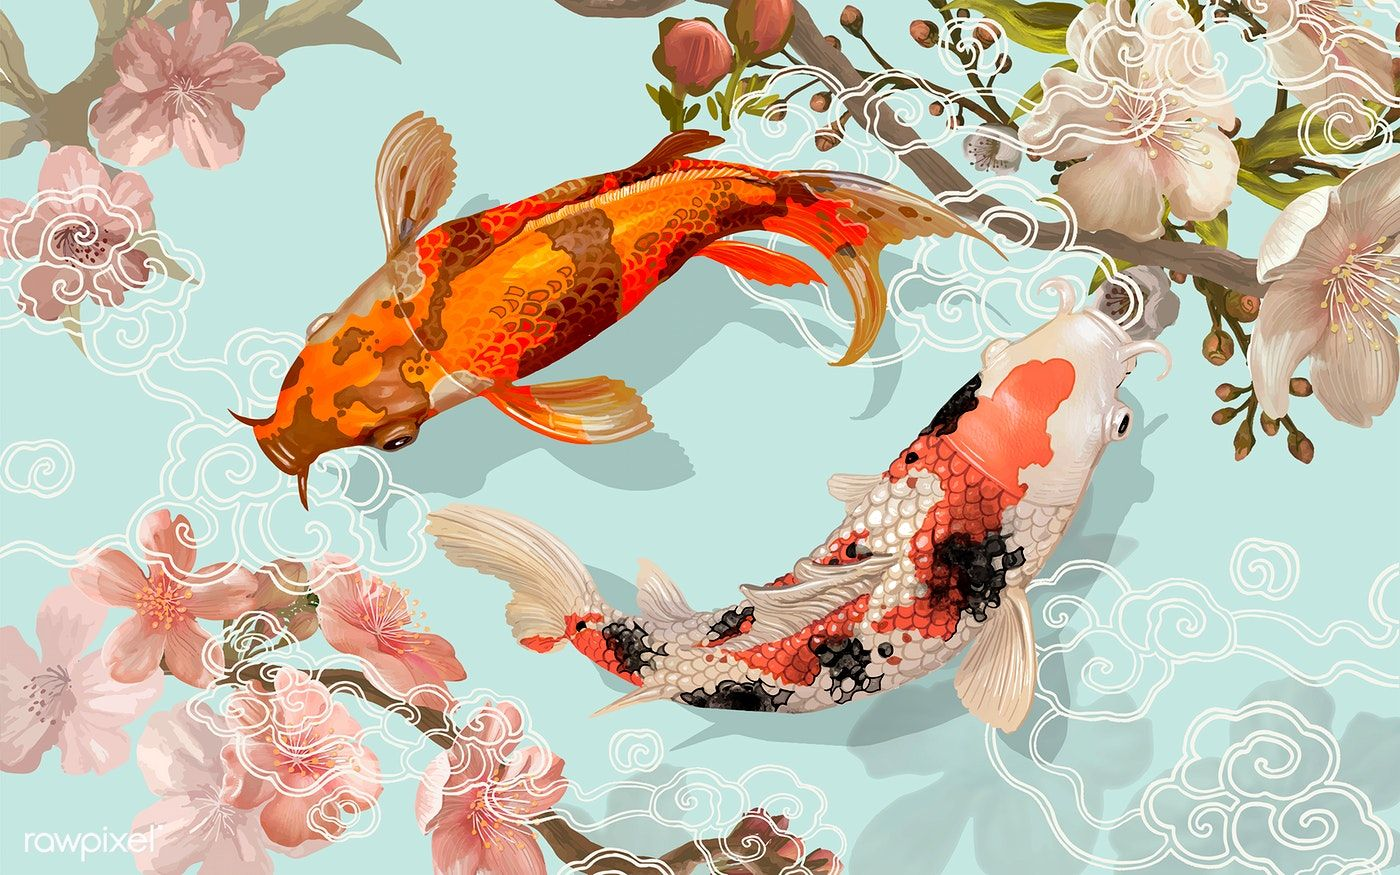 Download Premium Vector Of Two Japanese Koi Fish Swimming 449879 Koi Fish Drawing Koi Painting Fish Drawings